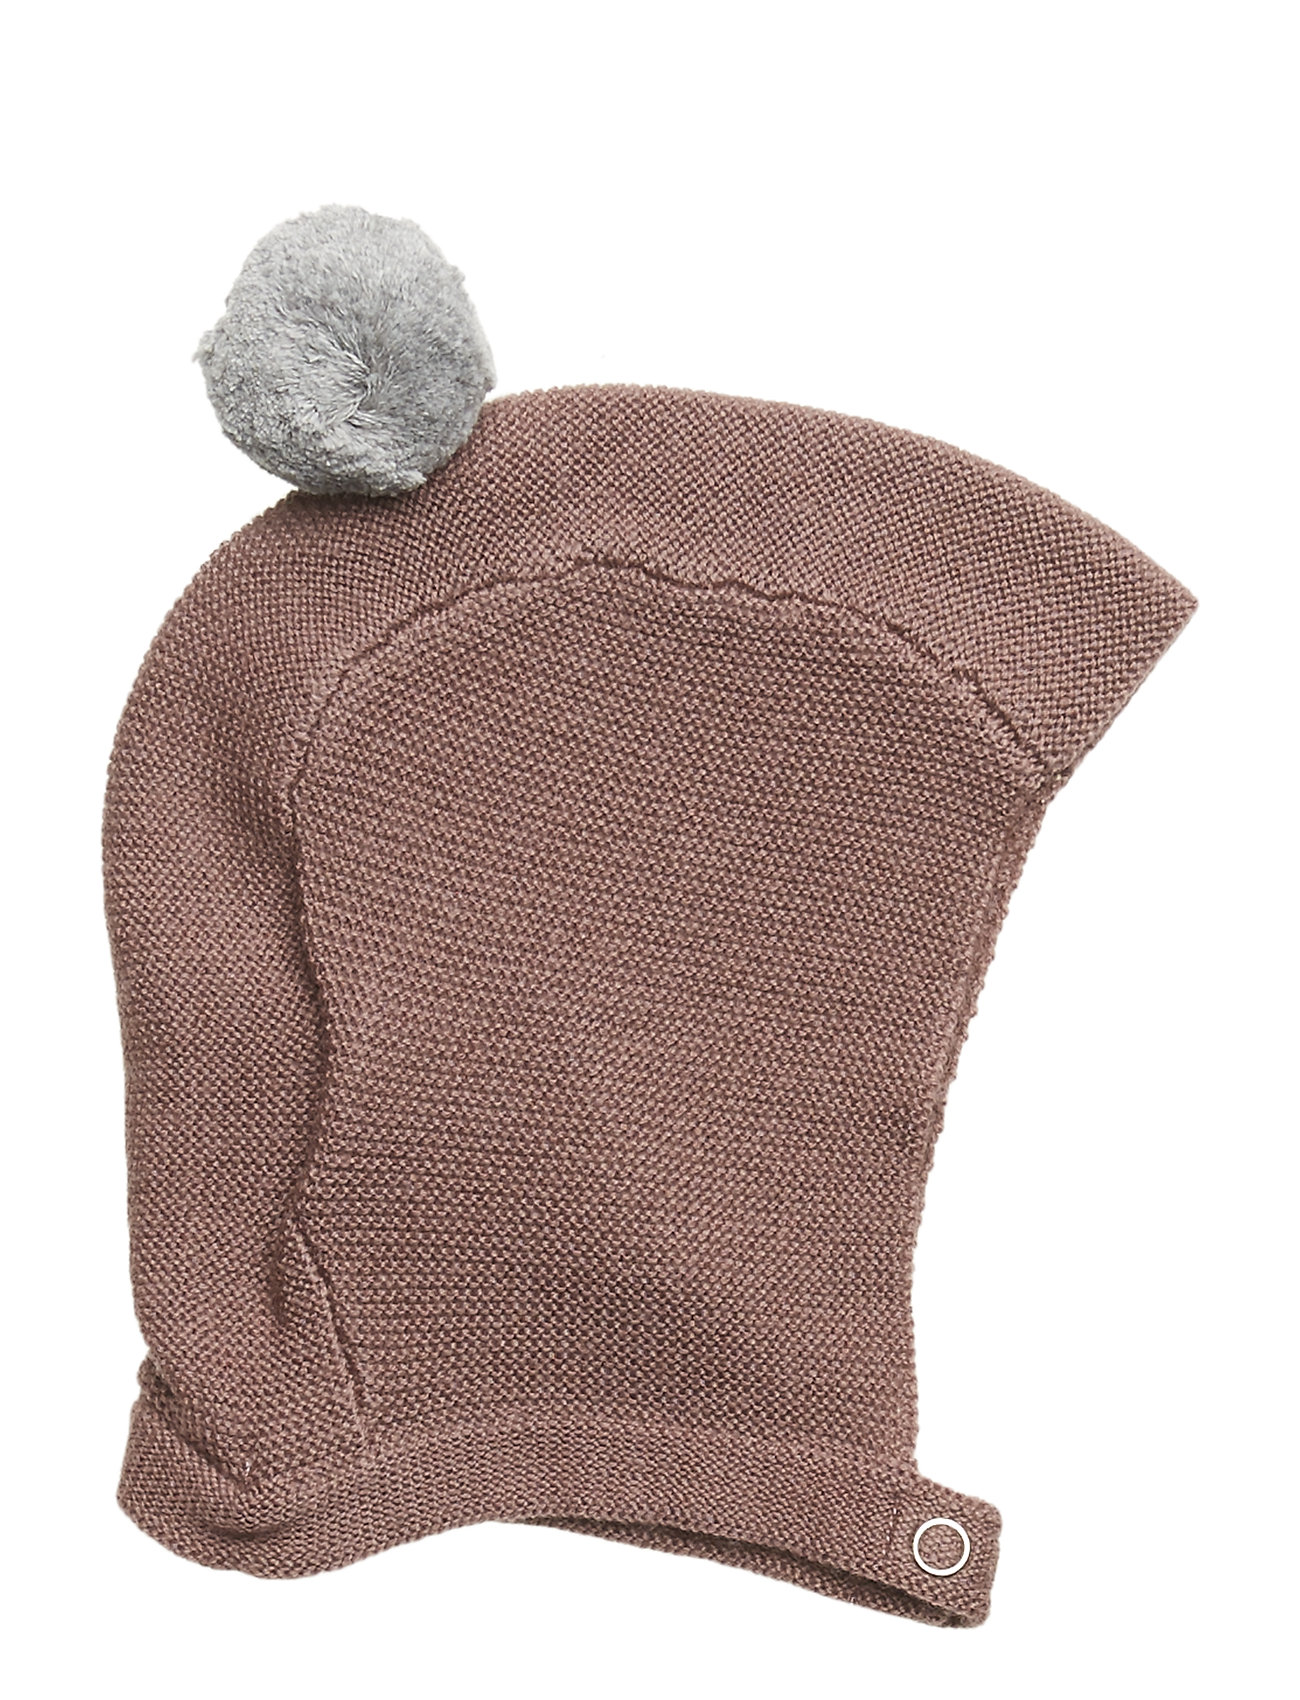 Hust & Claire France - Knitted hat